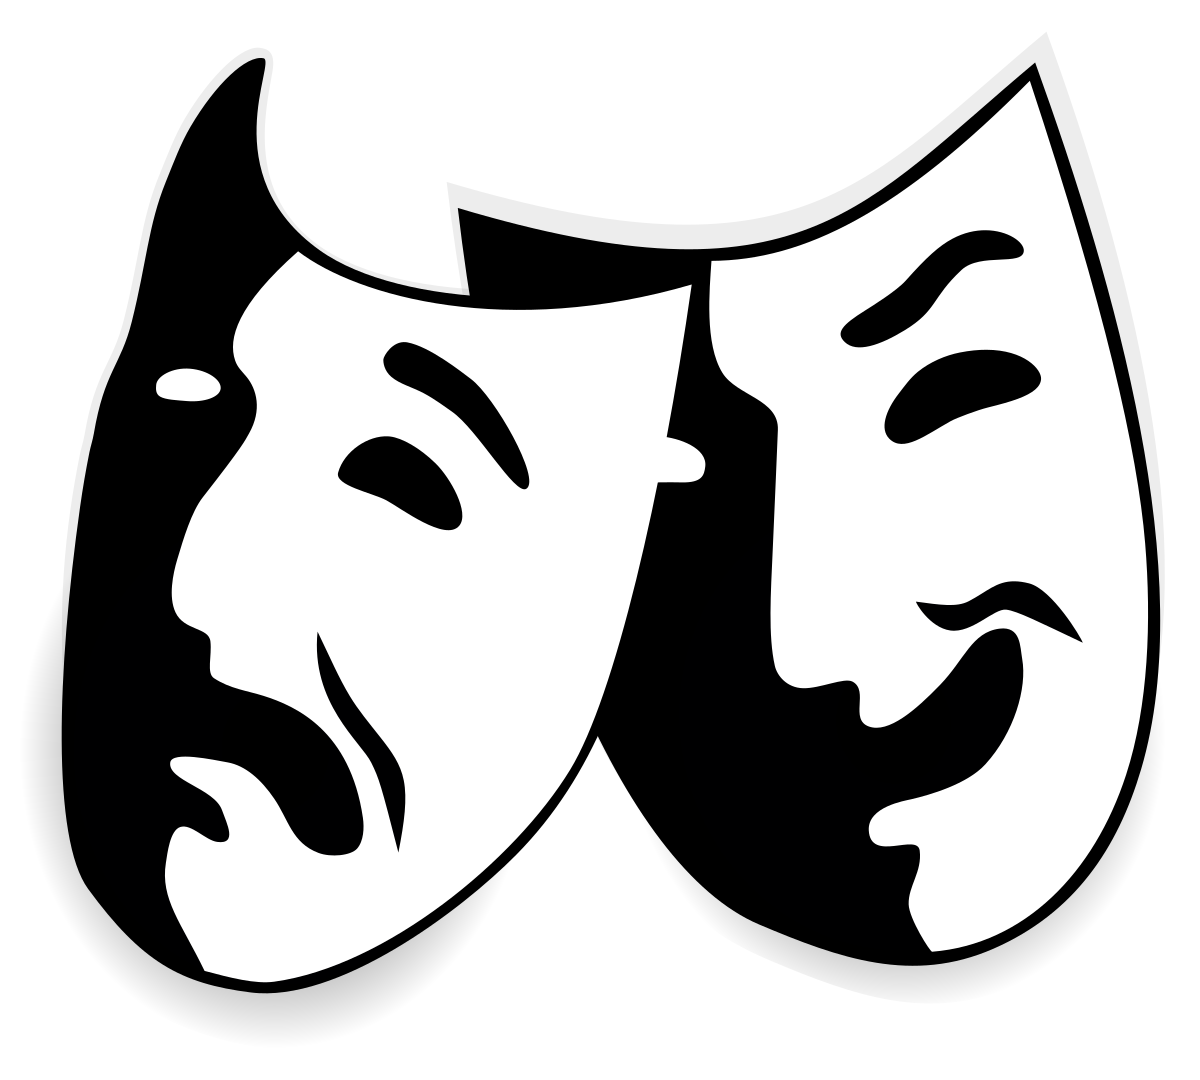 File:Comedy and tragedy masks without background.svg.